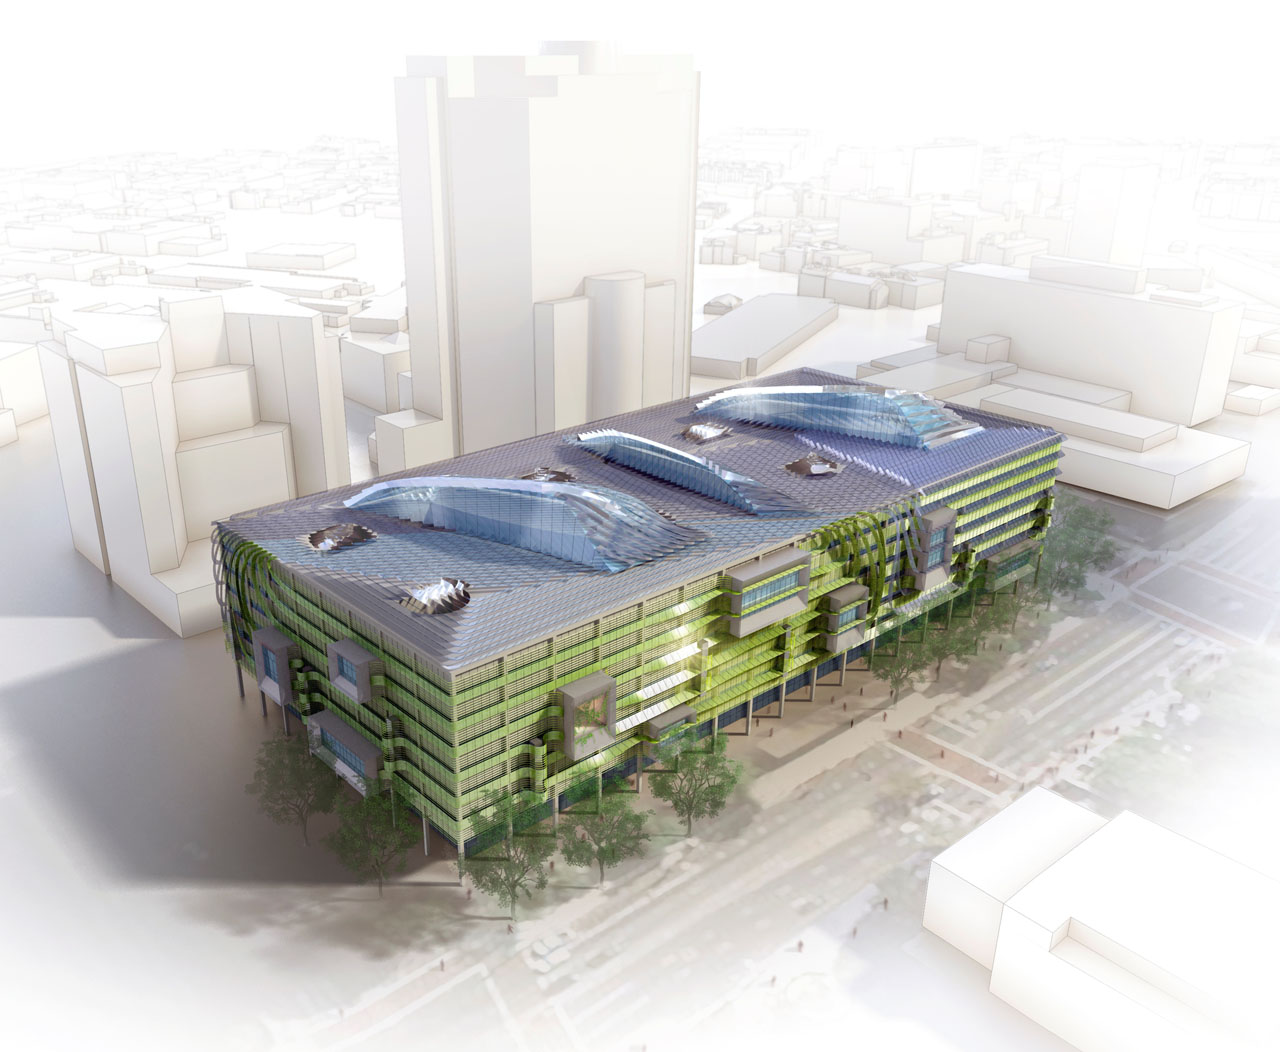 Hok vanderweil process zero concept building as green for Concept building